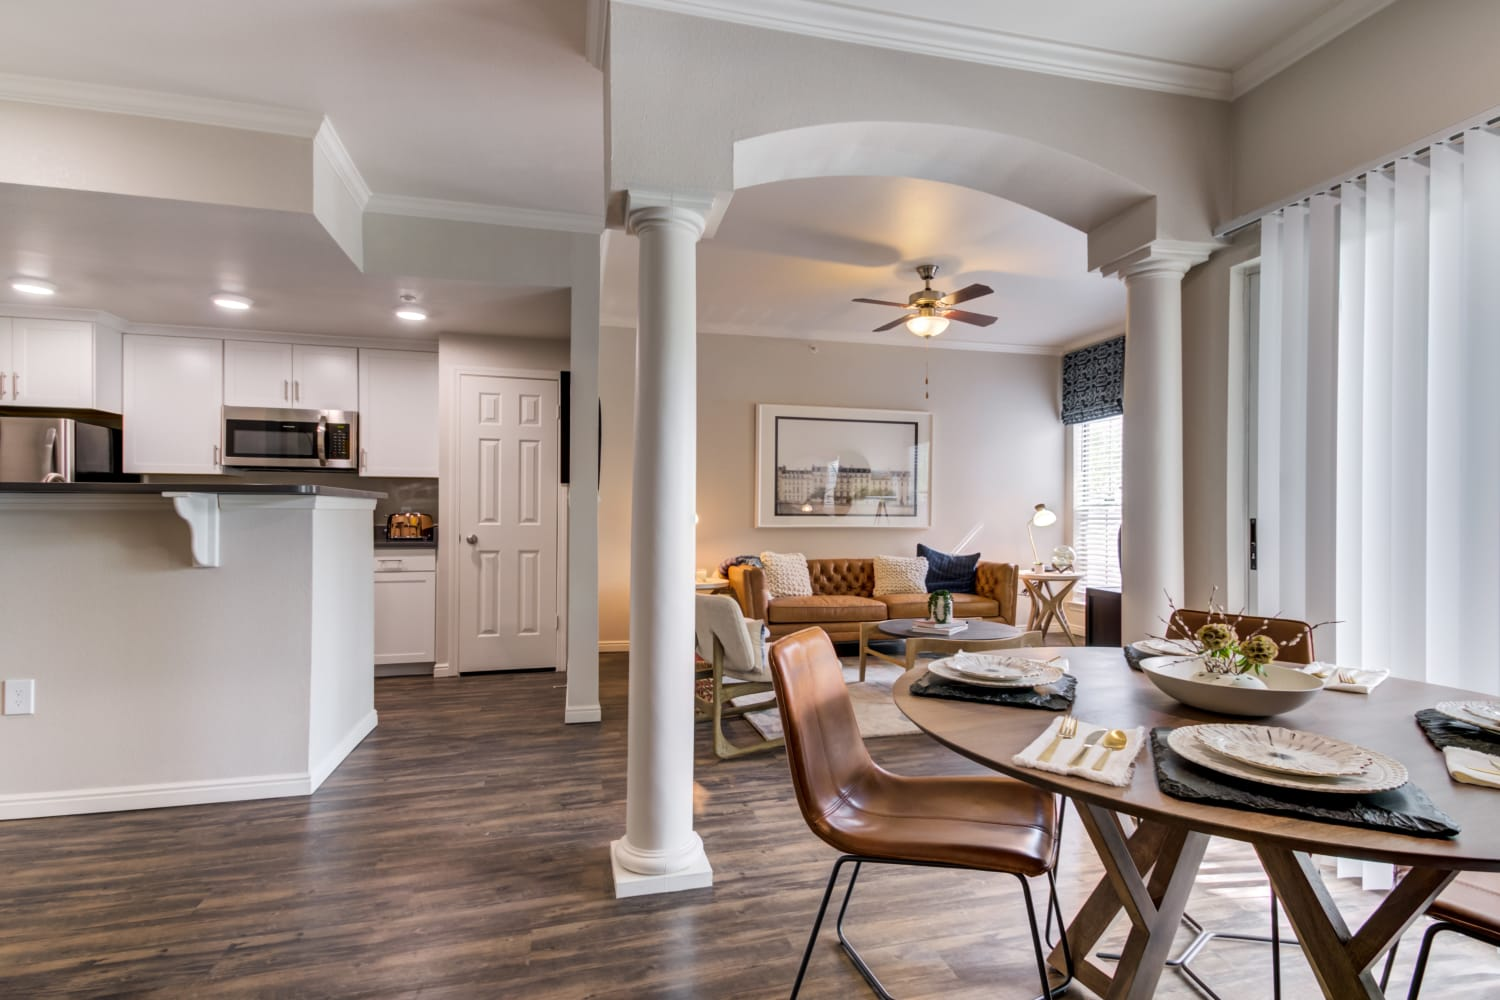 Dining table with view towards living room and kitchen featuring white cabinets and breakfast bar seating in an apartment at Irving Schoolhouse Apartments in Salt Lake City, Utah